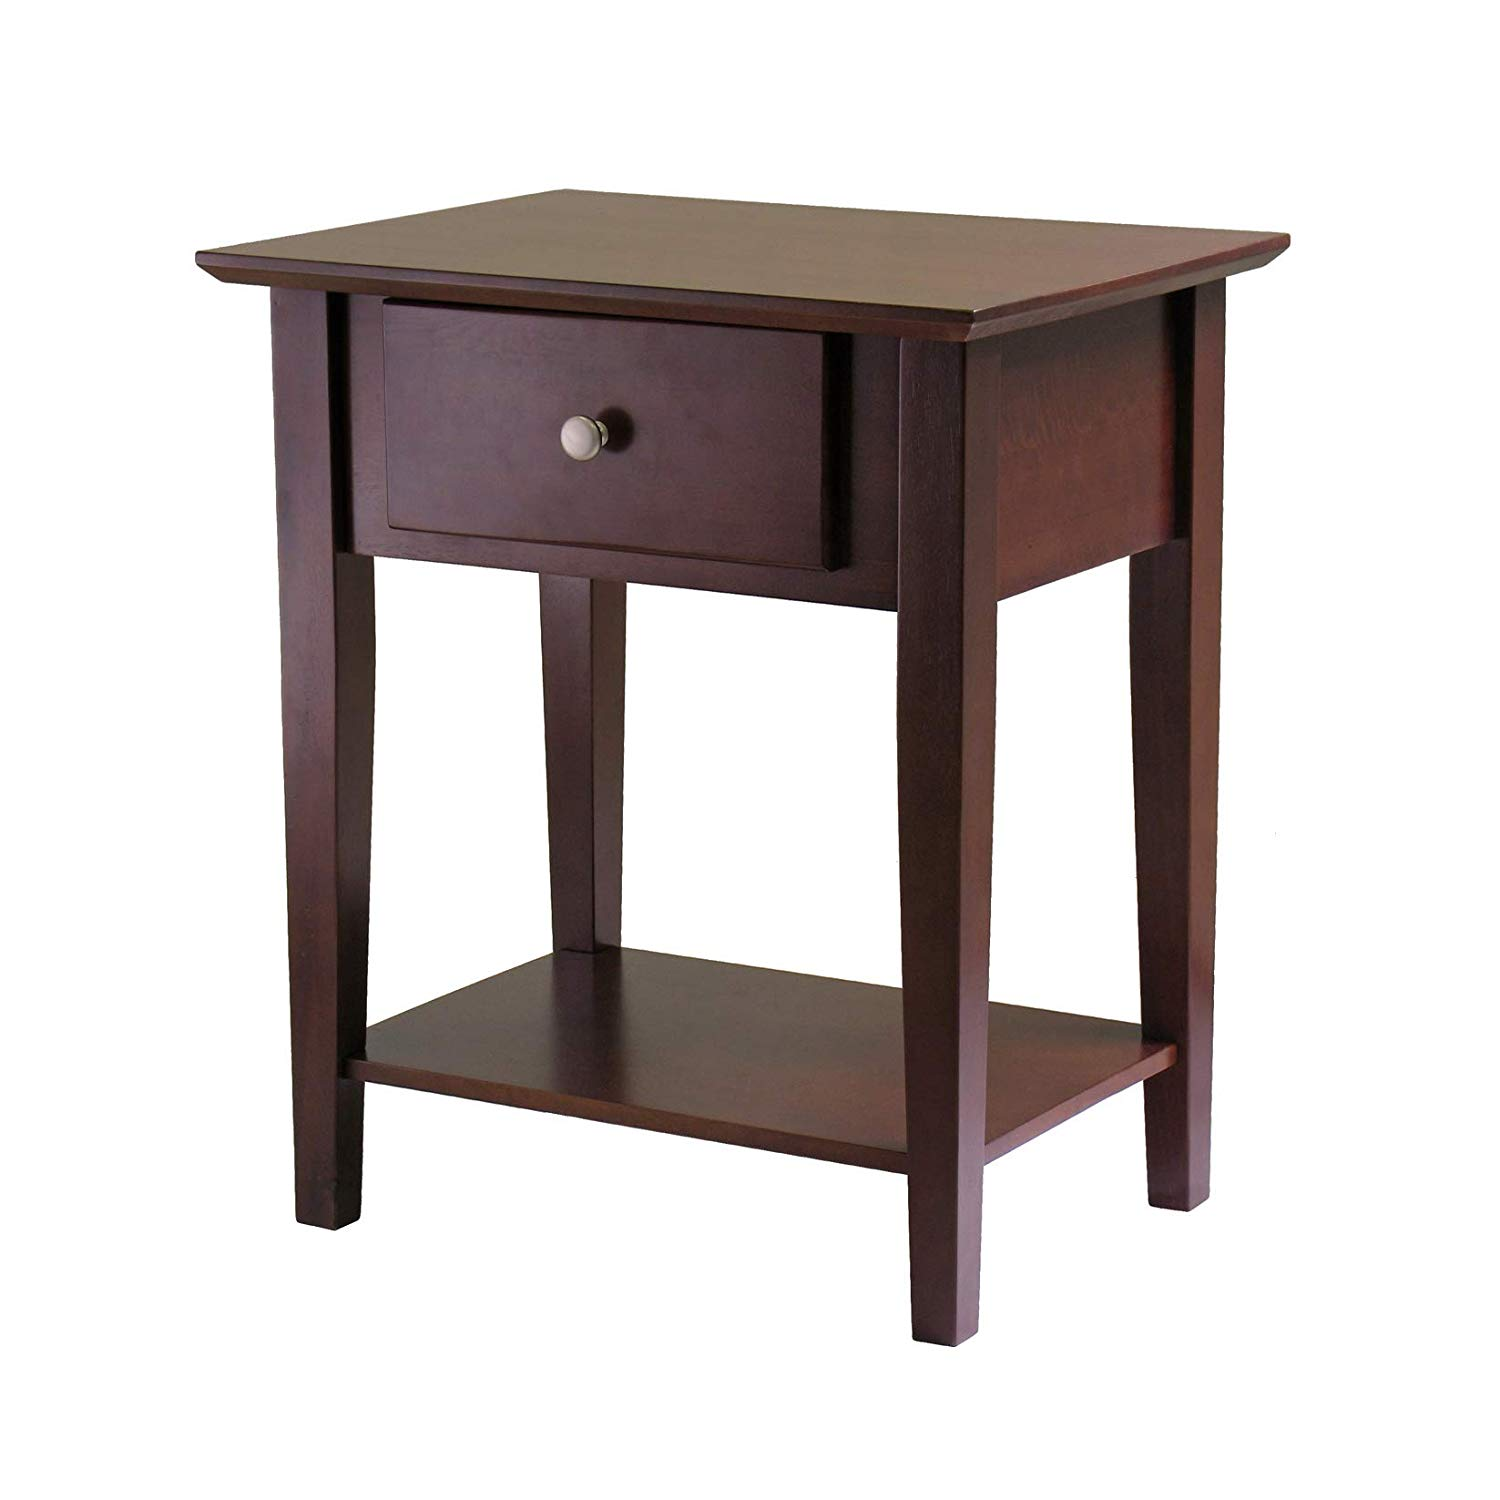 winsome wood shaker accent table antique walnut kitchen dining side with umbrella hole placemats for round counter high pier imports patio furniture iron nesting tables pearl drum